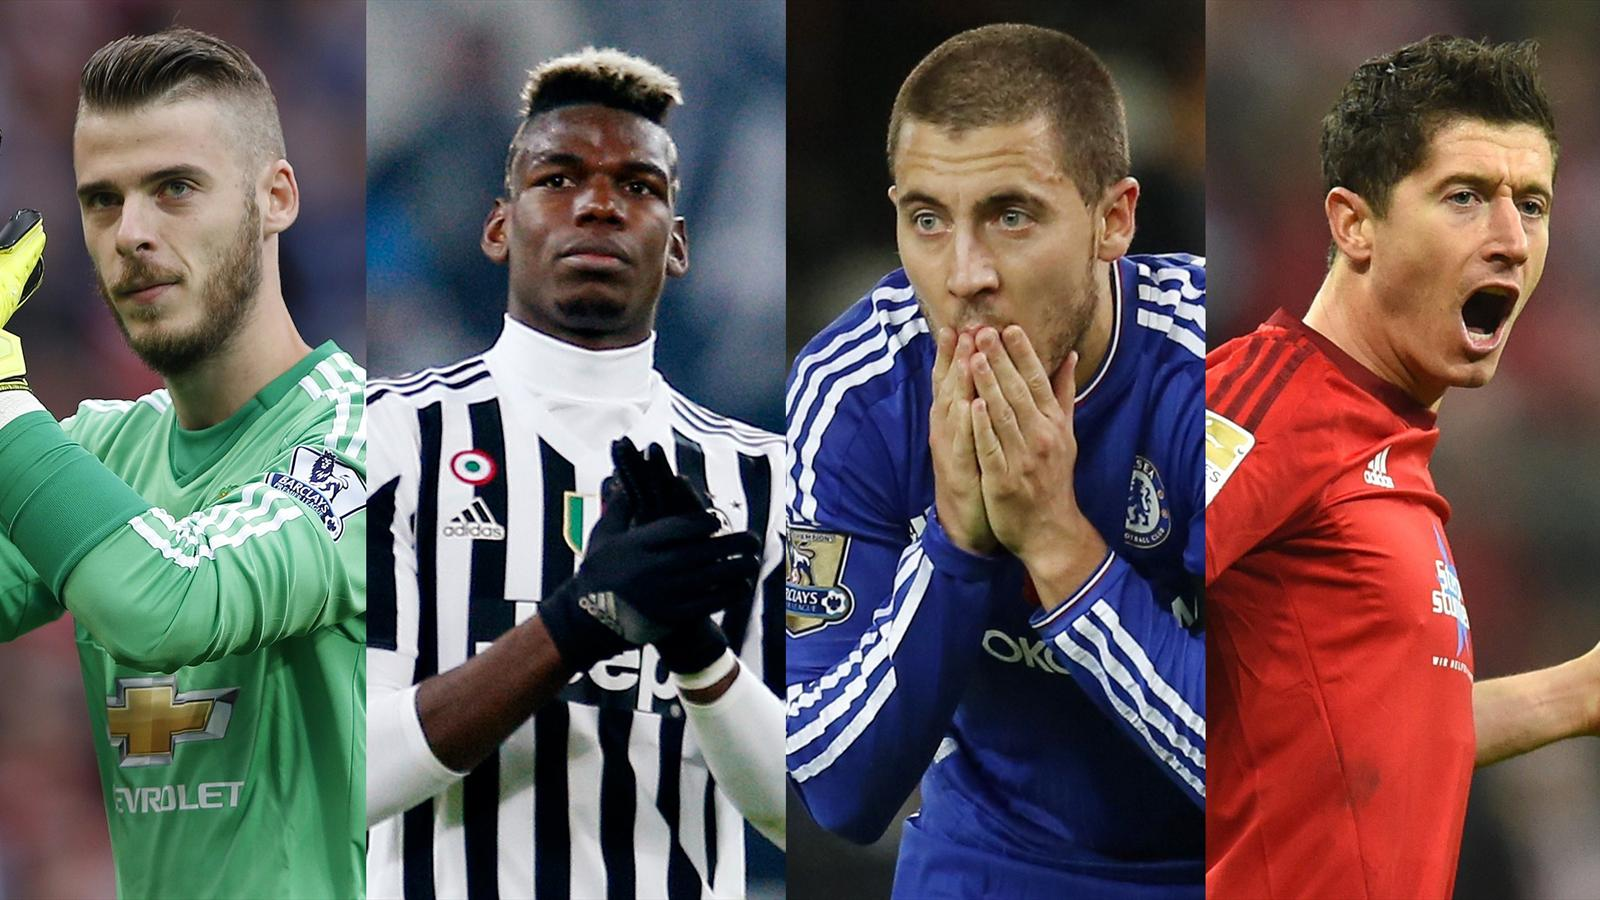 David De Gea, Paul Pogba, Eden Hazard, Robert Lewandowski